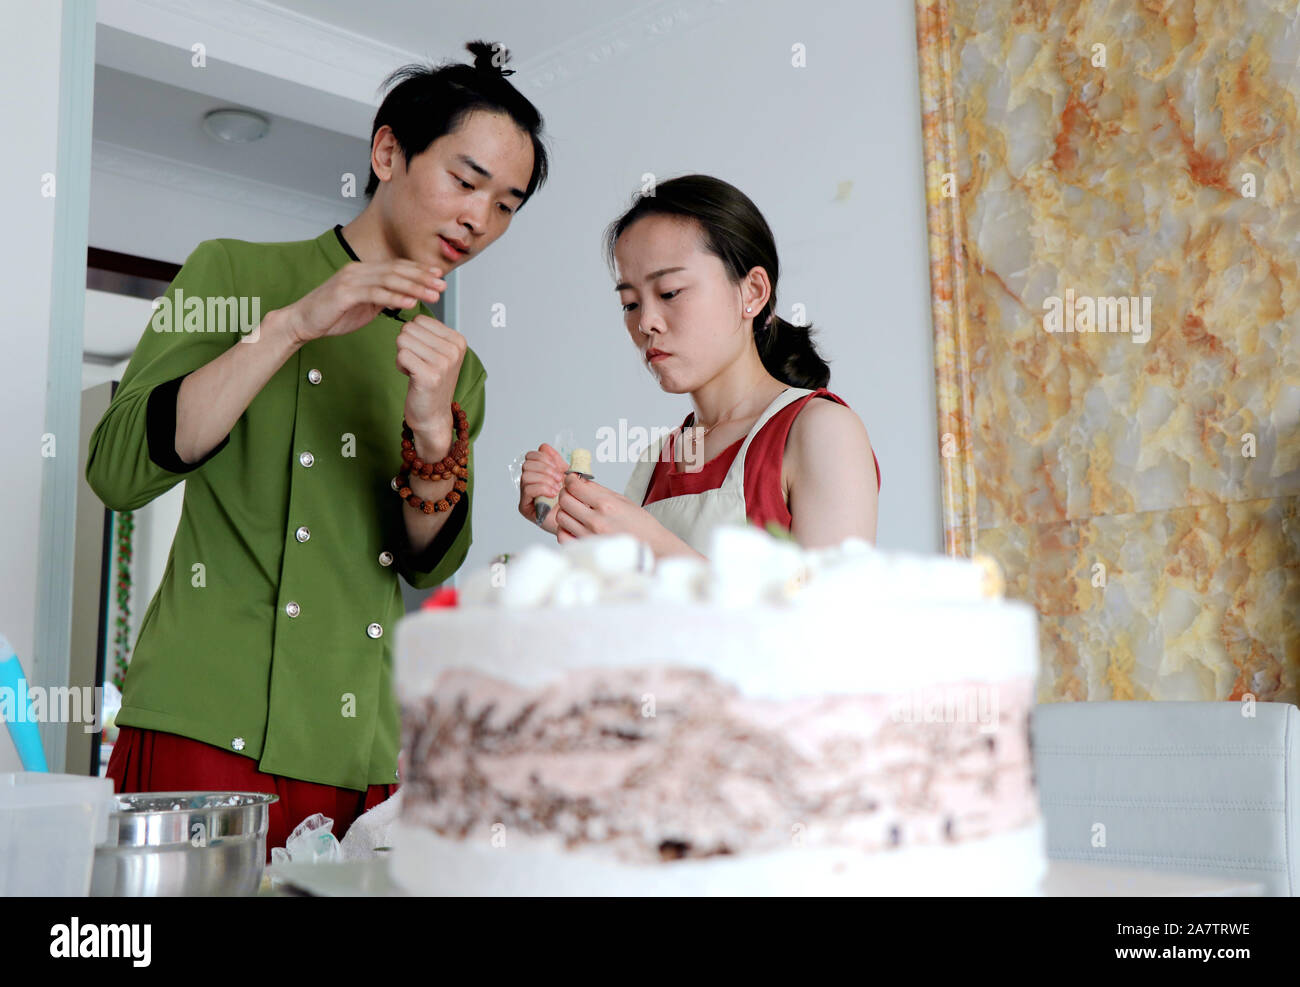 Magnificent Chinese Man Liu Zepeng Makes A Birthday Cake Featuring The Funny Birthday Cards Online Elaedamsfinfo